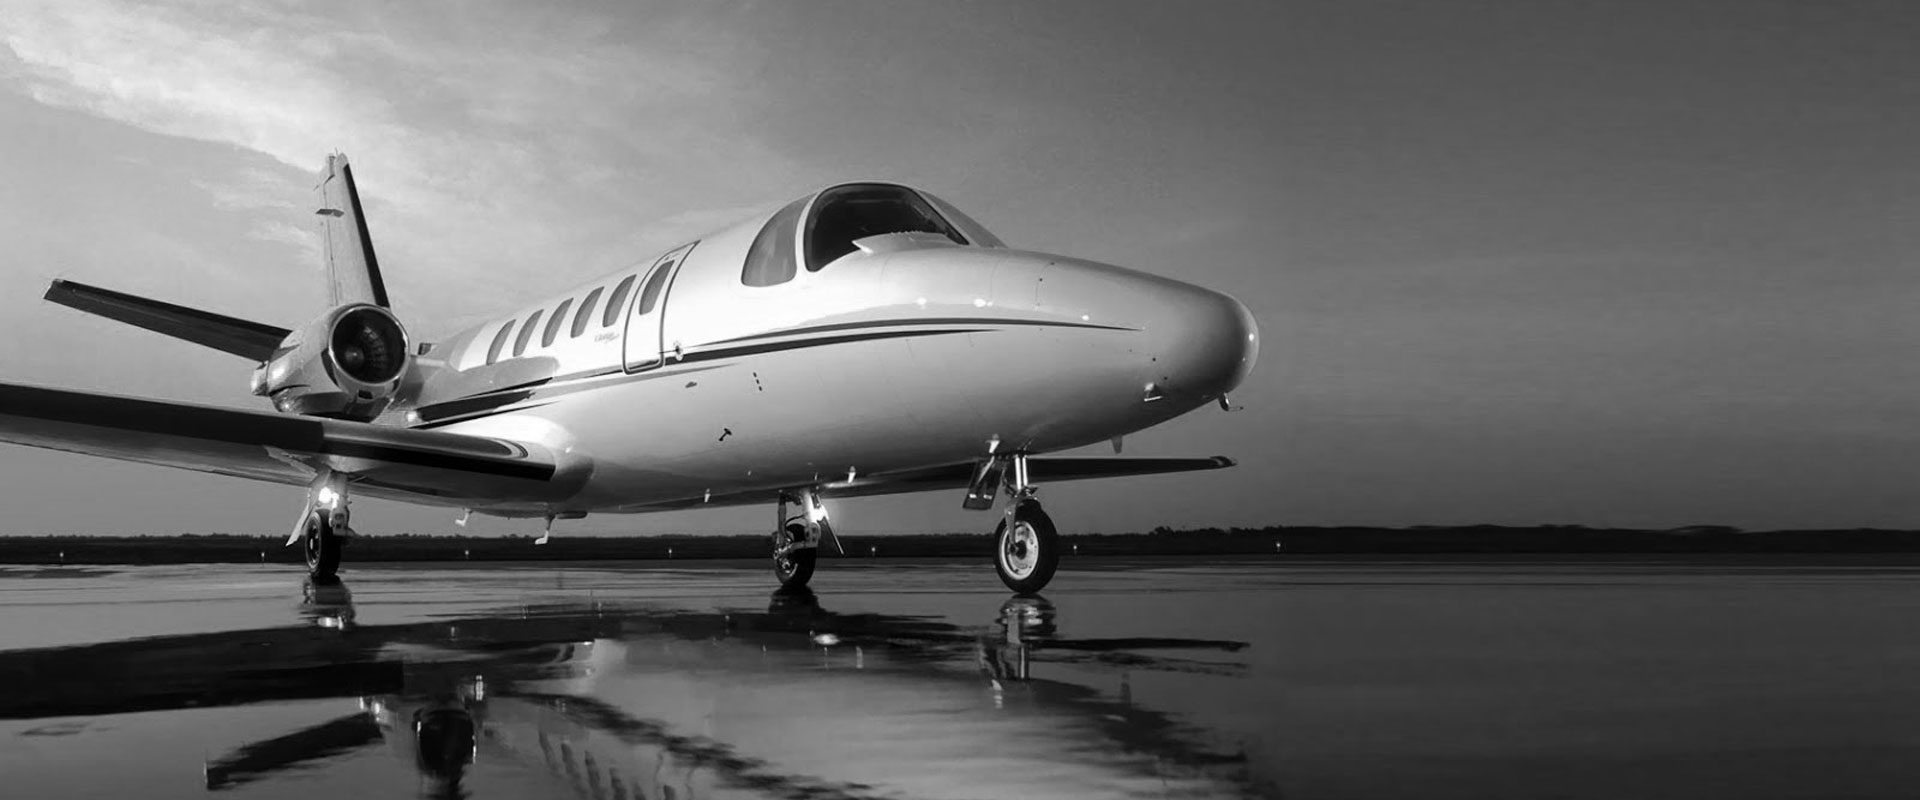 private-jet-bw